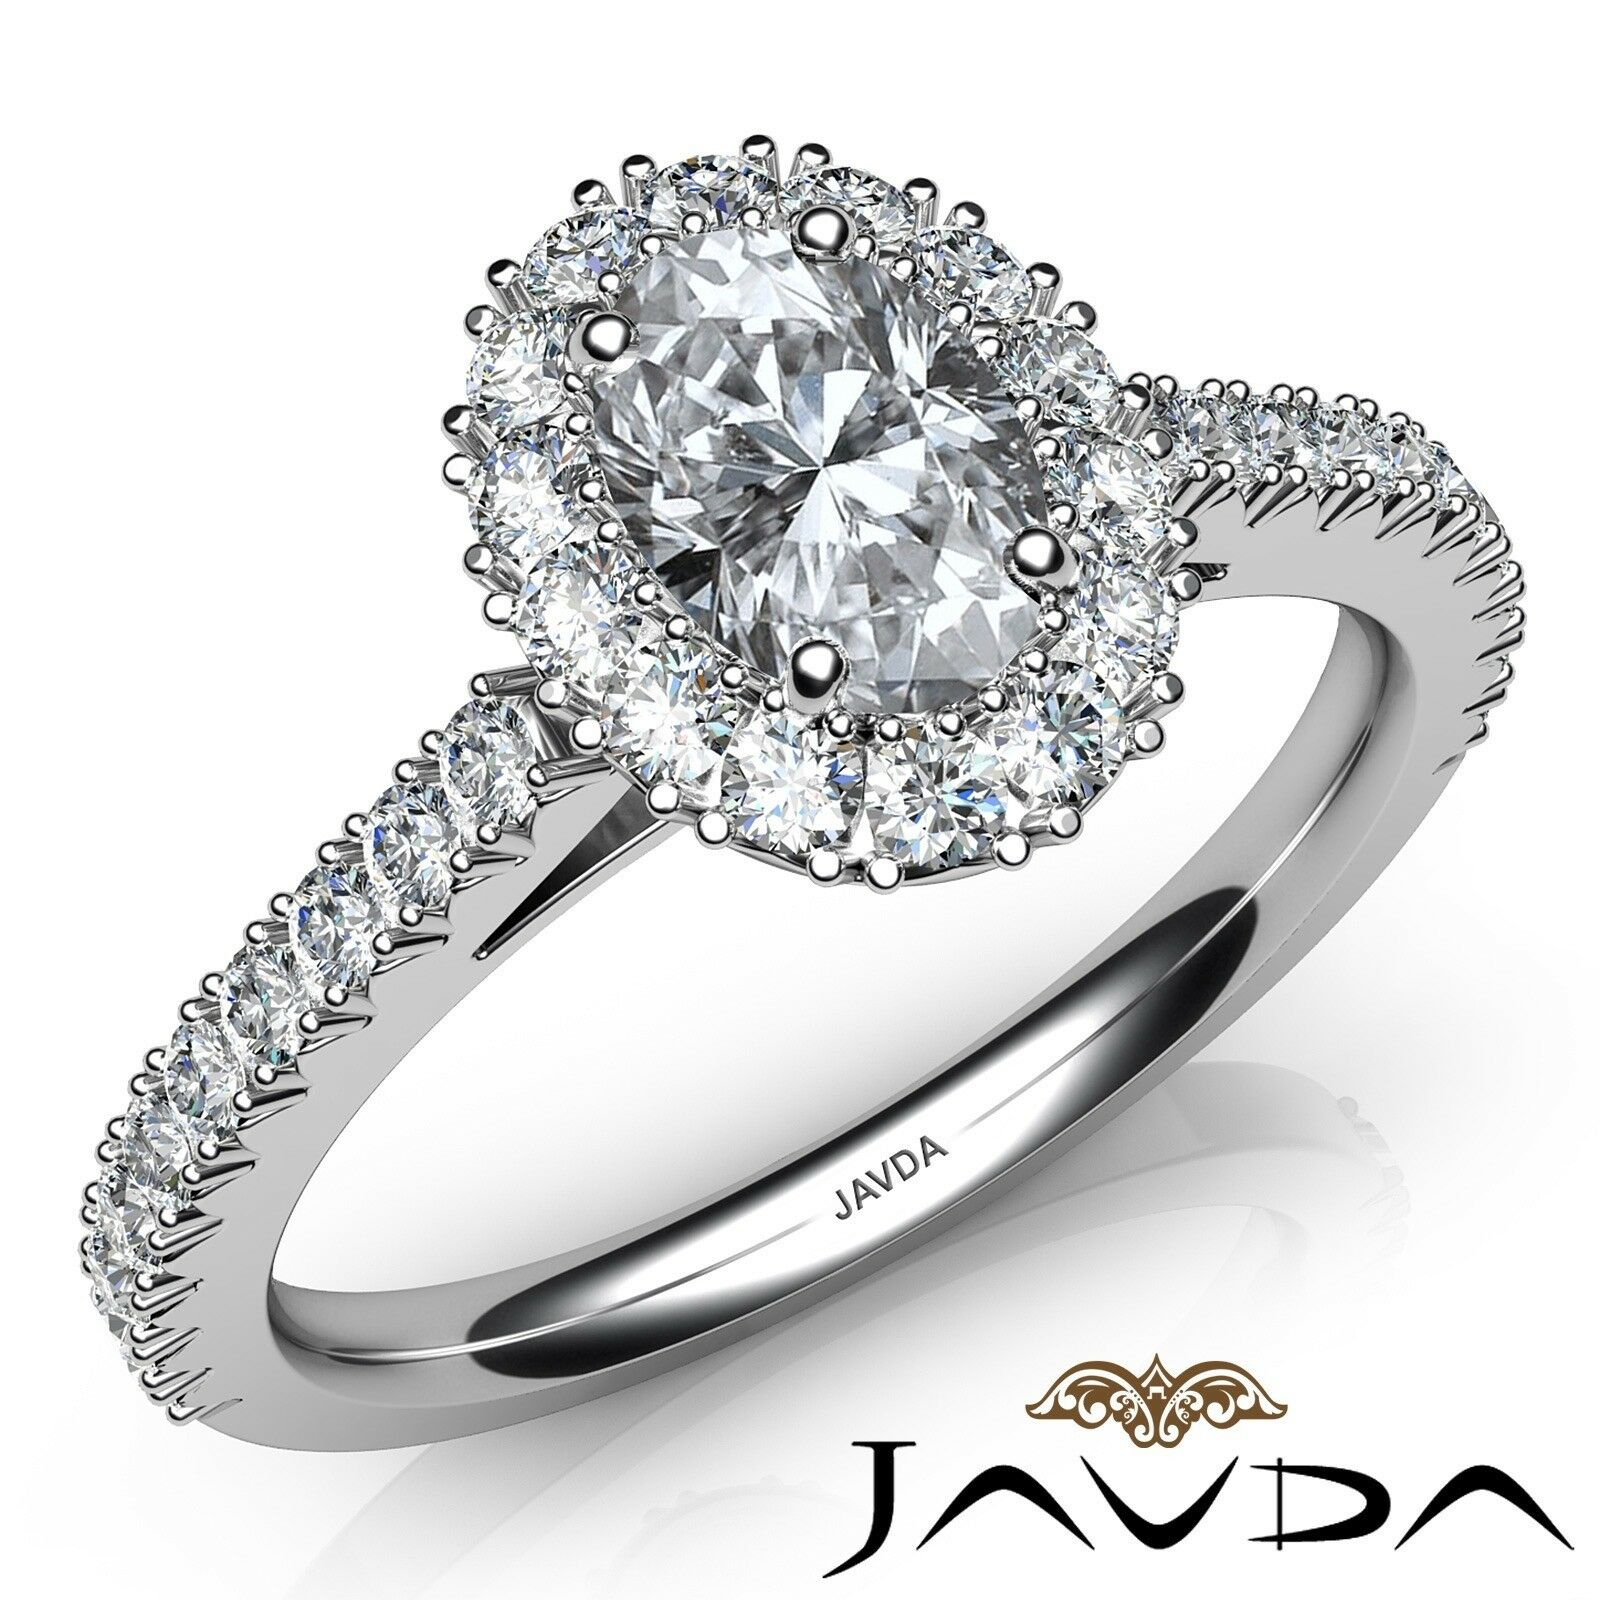 1.5ctw French V Cut Halo Pave Oval Diamond Engagement Ring GIA F-VVS2 White Gold